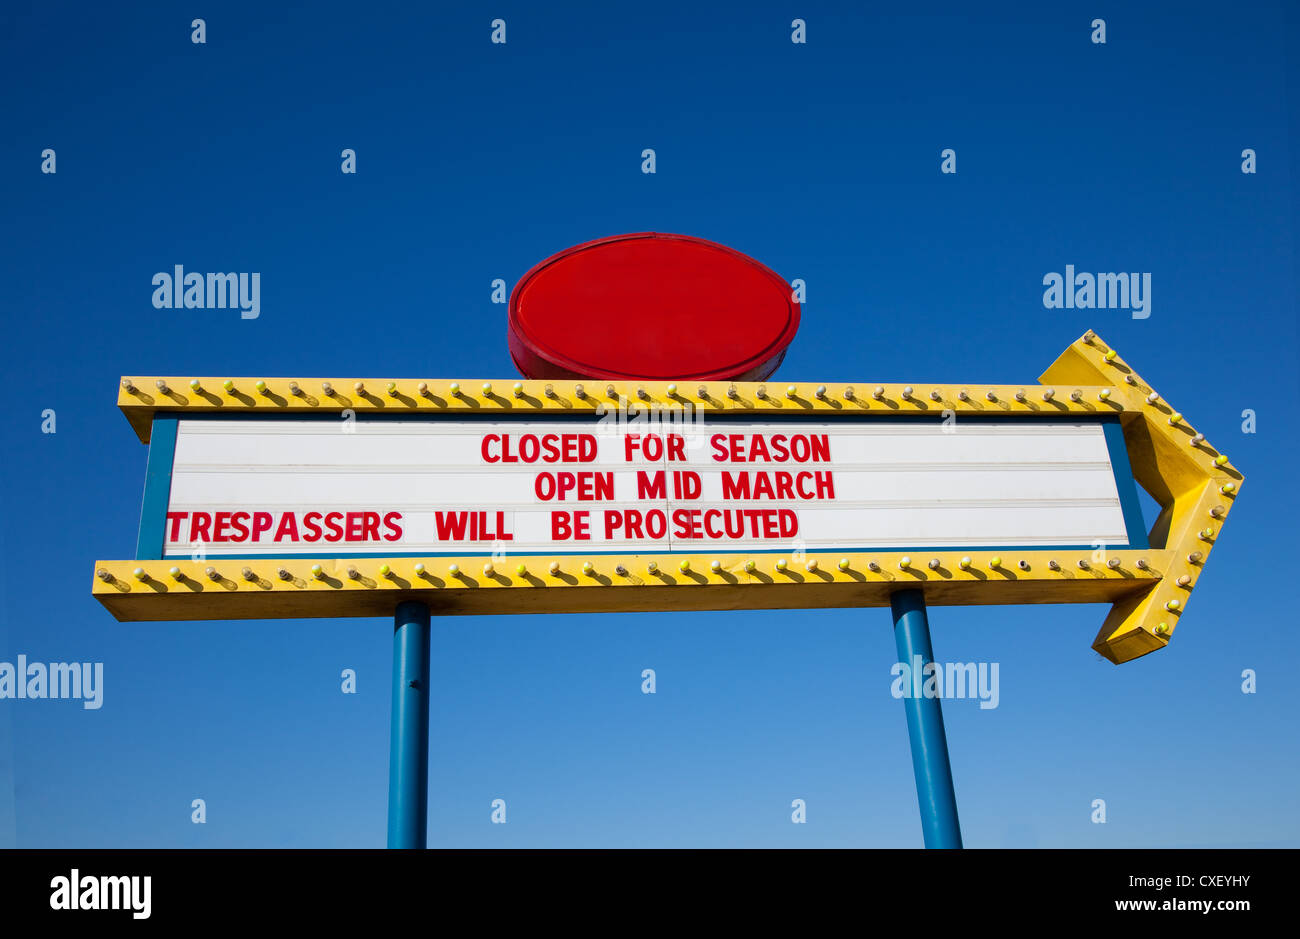 Retro movie theater billboard with a sky blue background - Stock Image